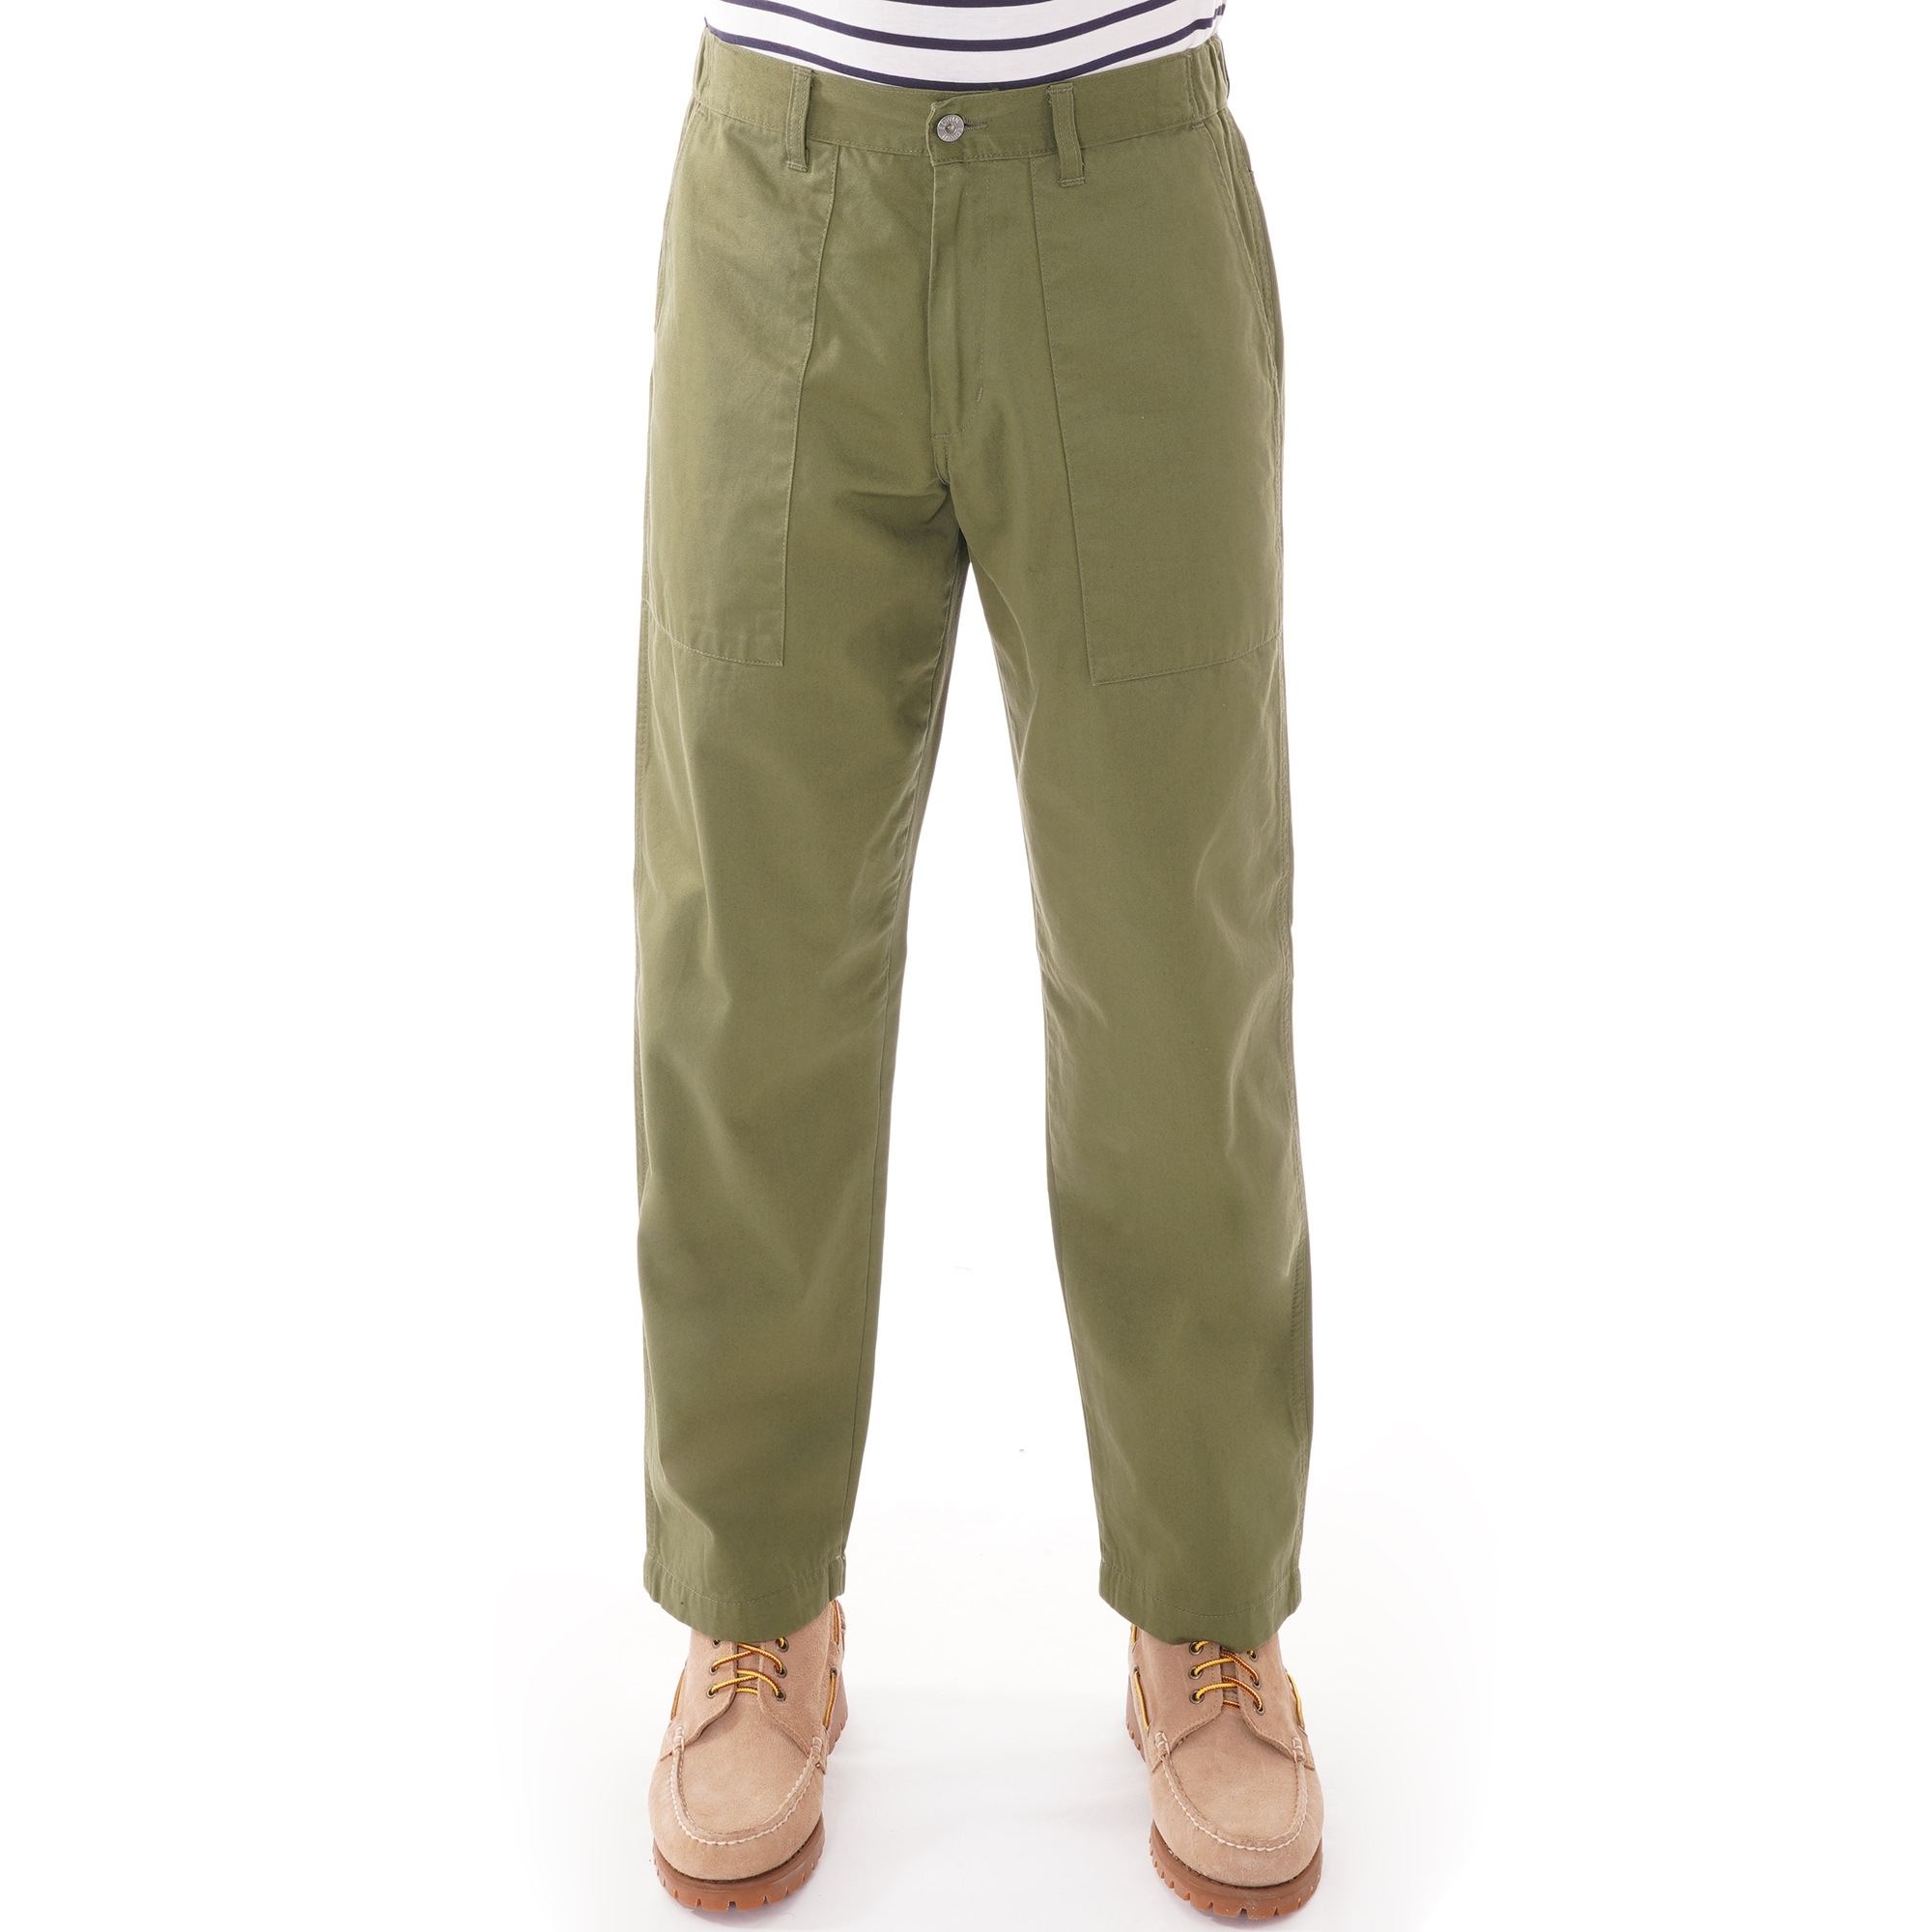 Military Green Edwin Jeans Labour Pant